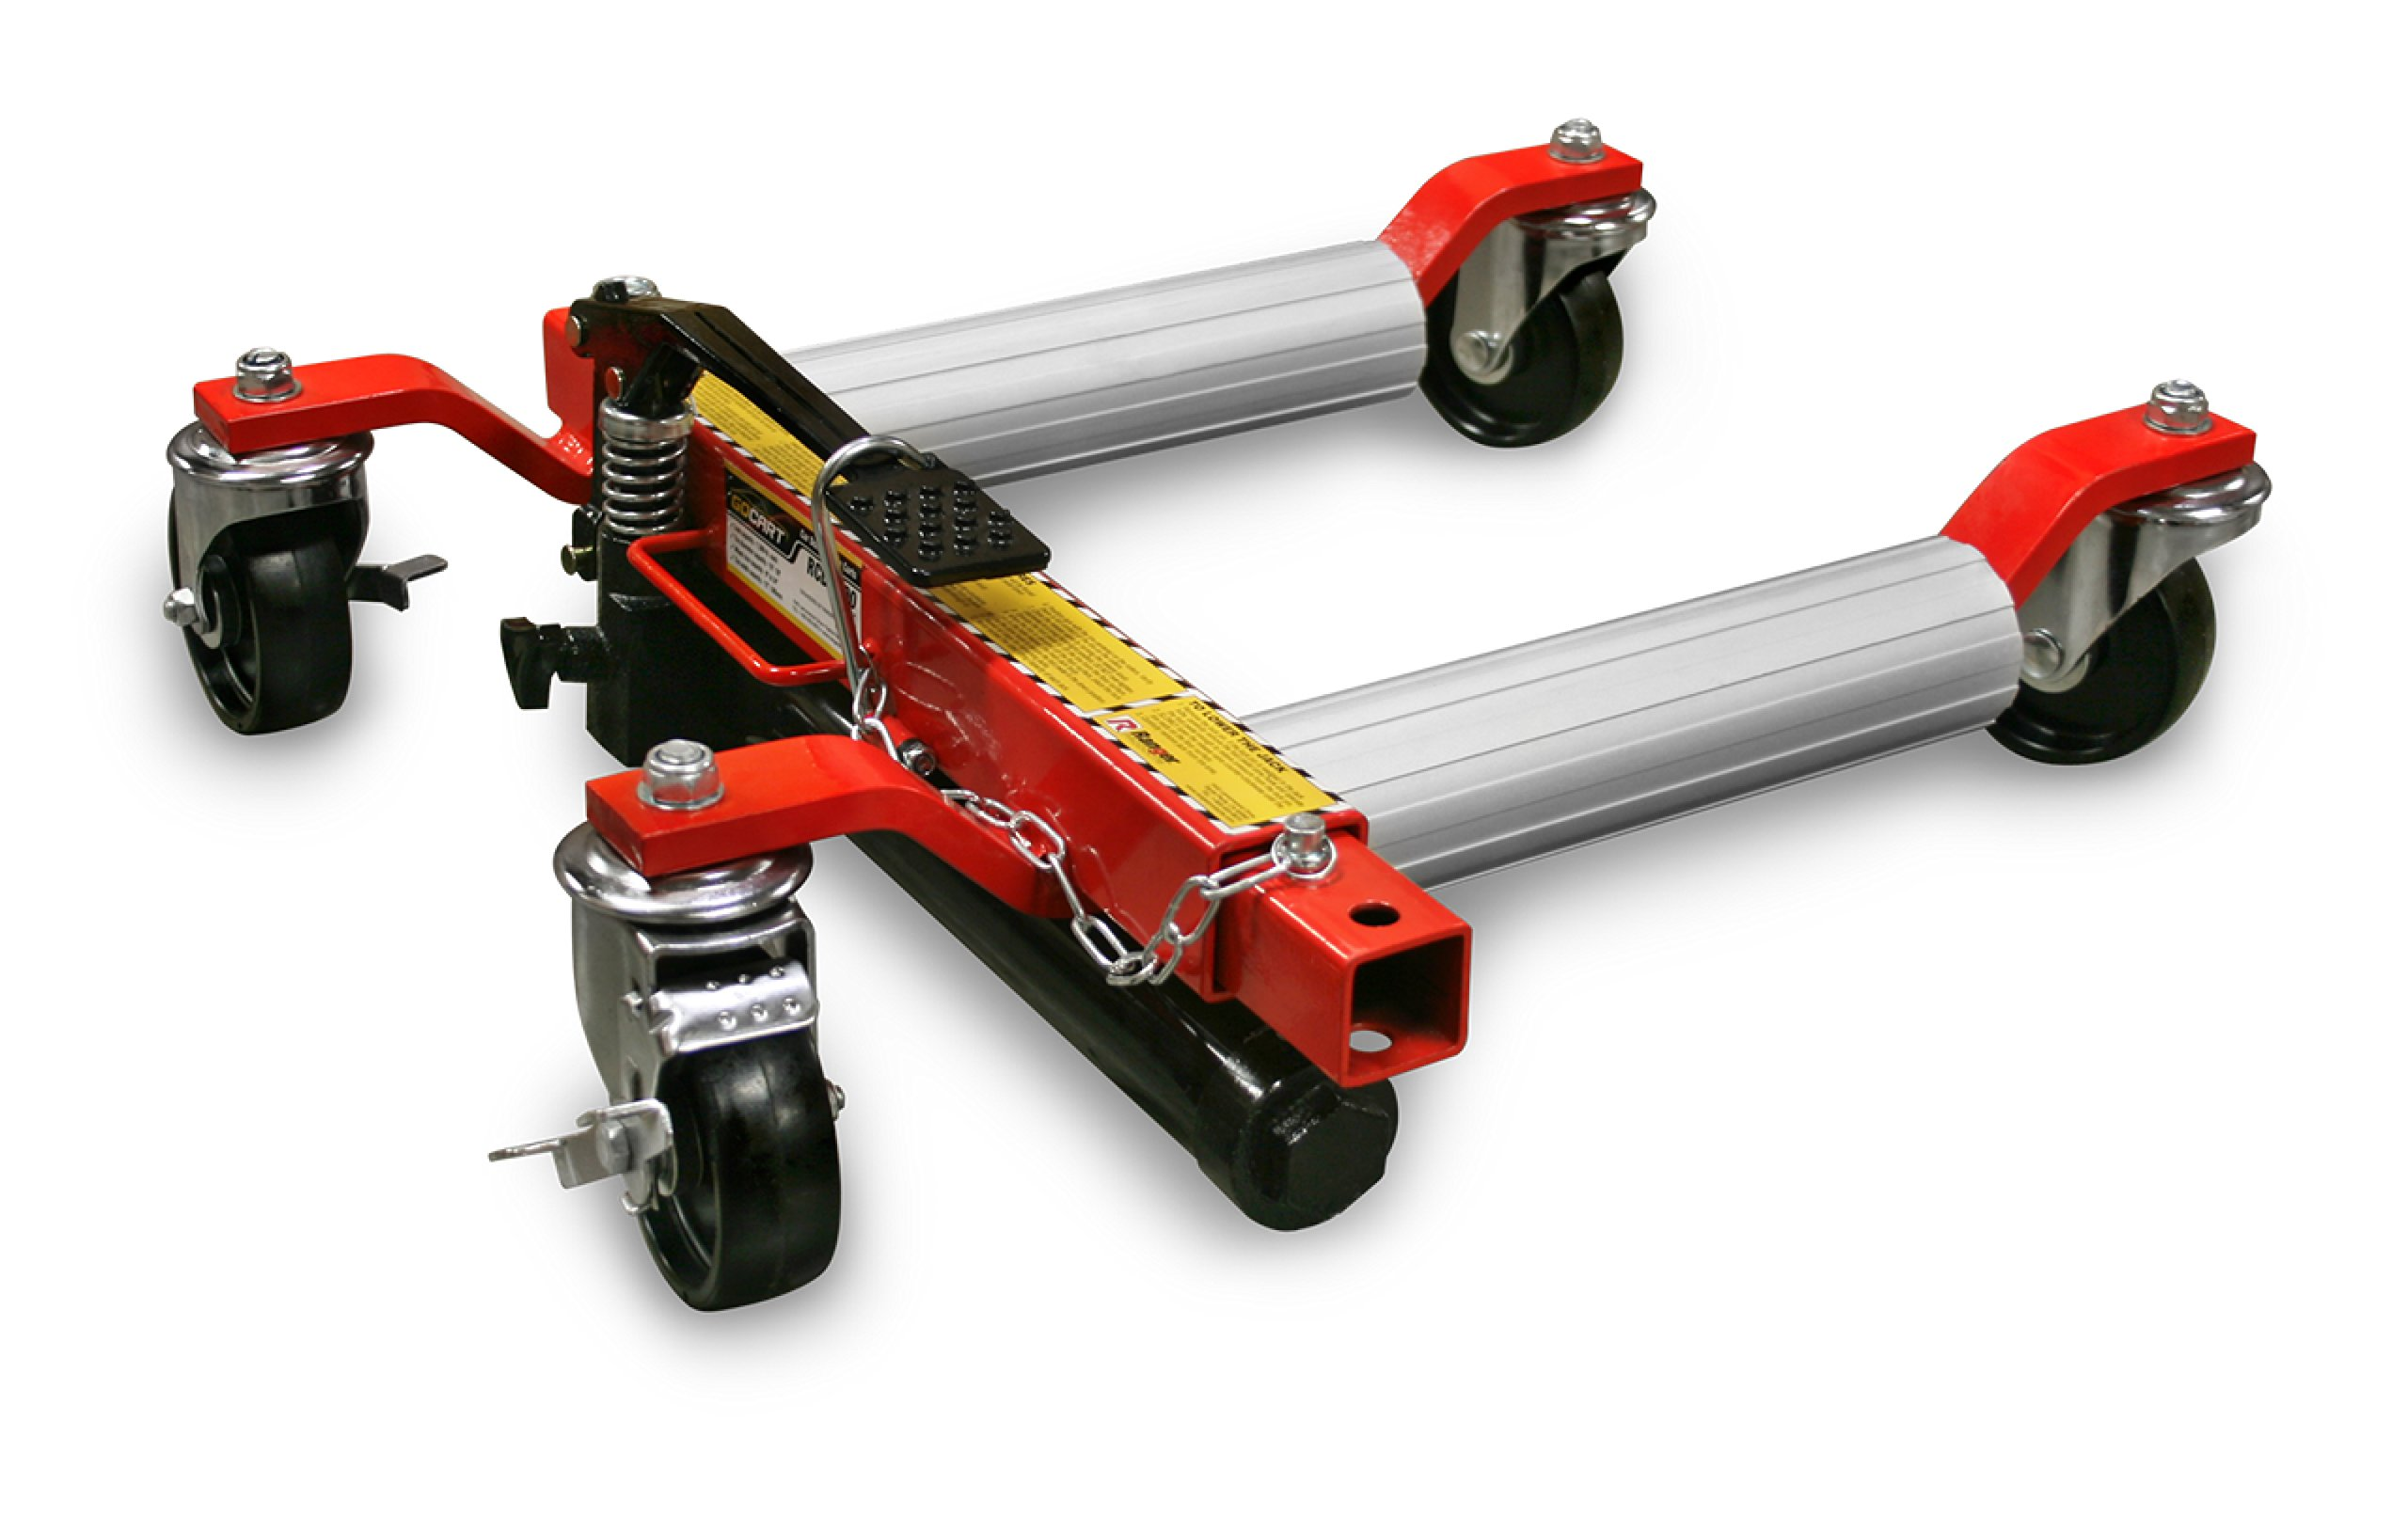 Ranger Gocart Rcd-1500 Rolling Car Dollies And Positioning Jacks / Set Of 2